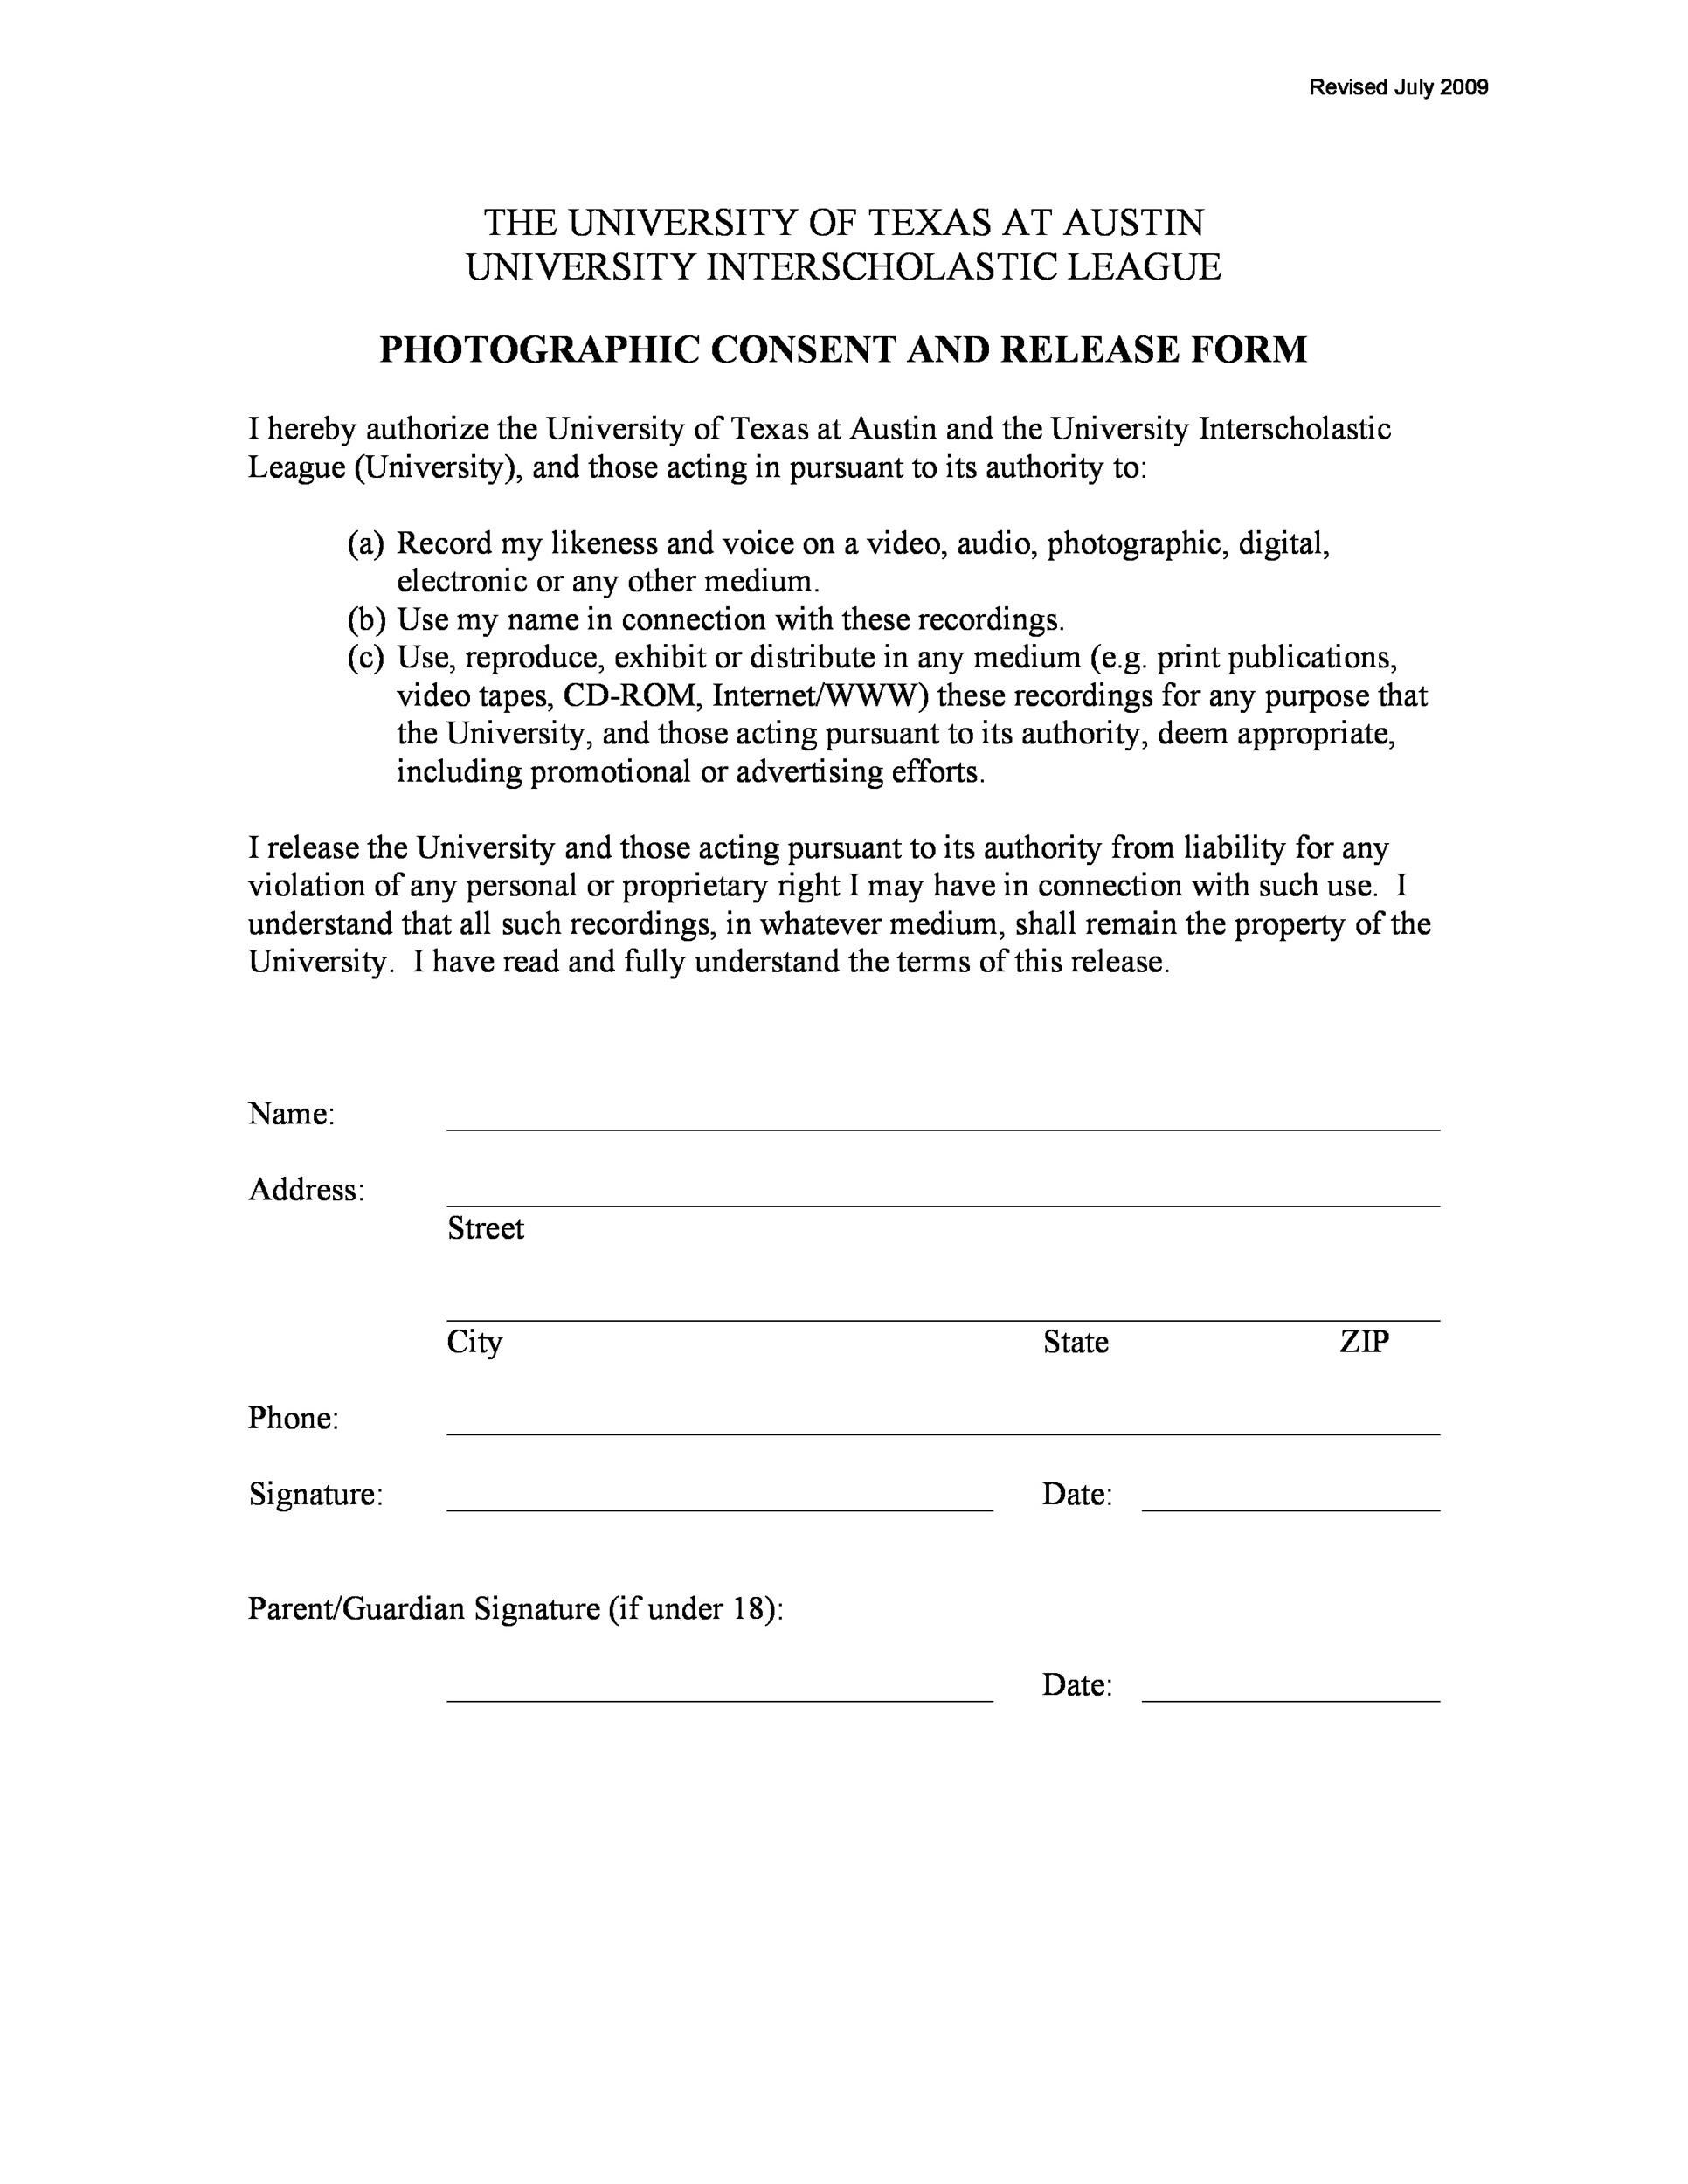 006 Incredible Photography Release Form Template High Def  Image Australia CanadaFull